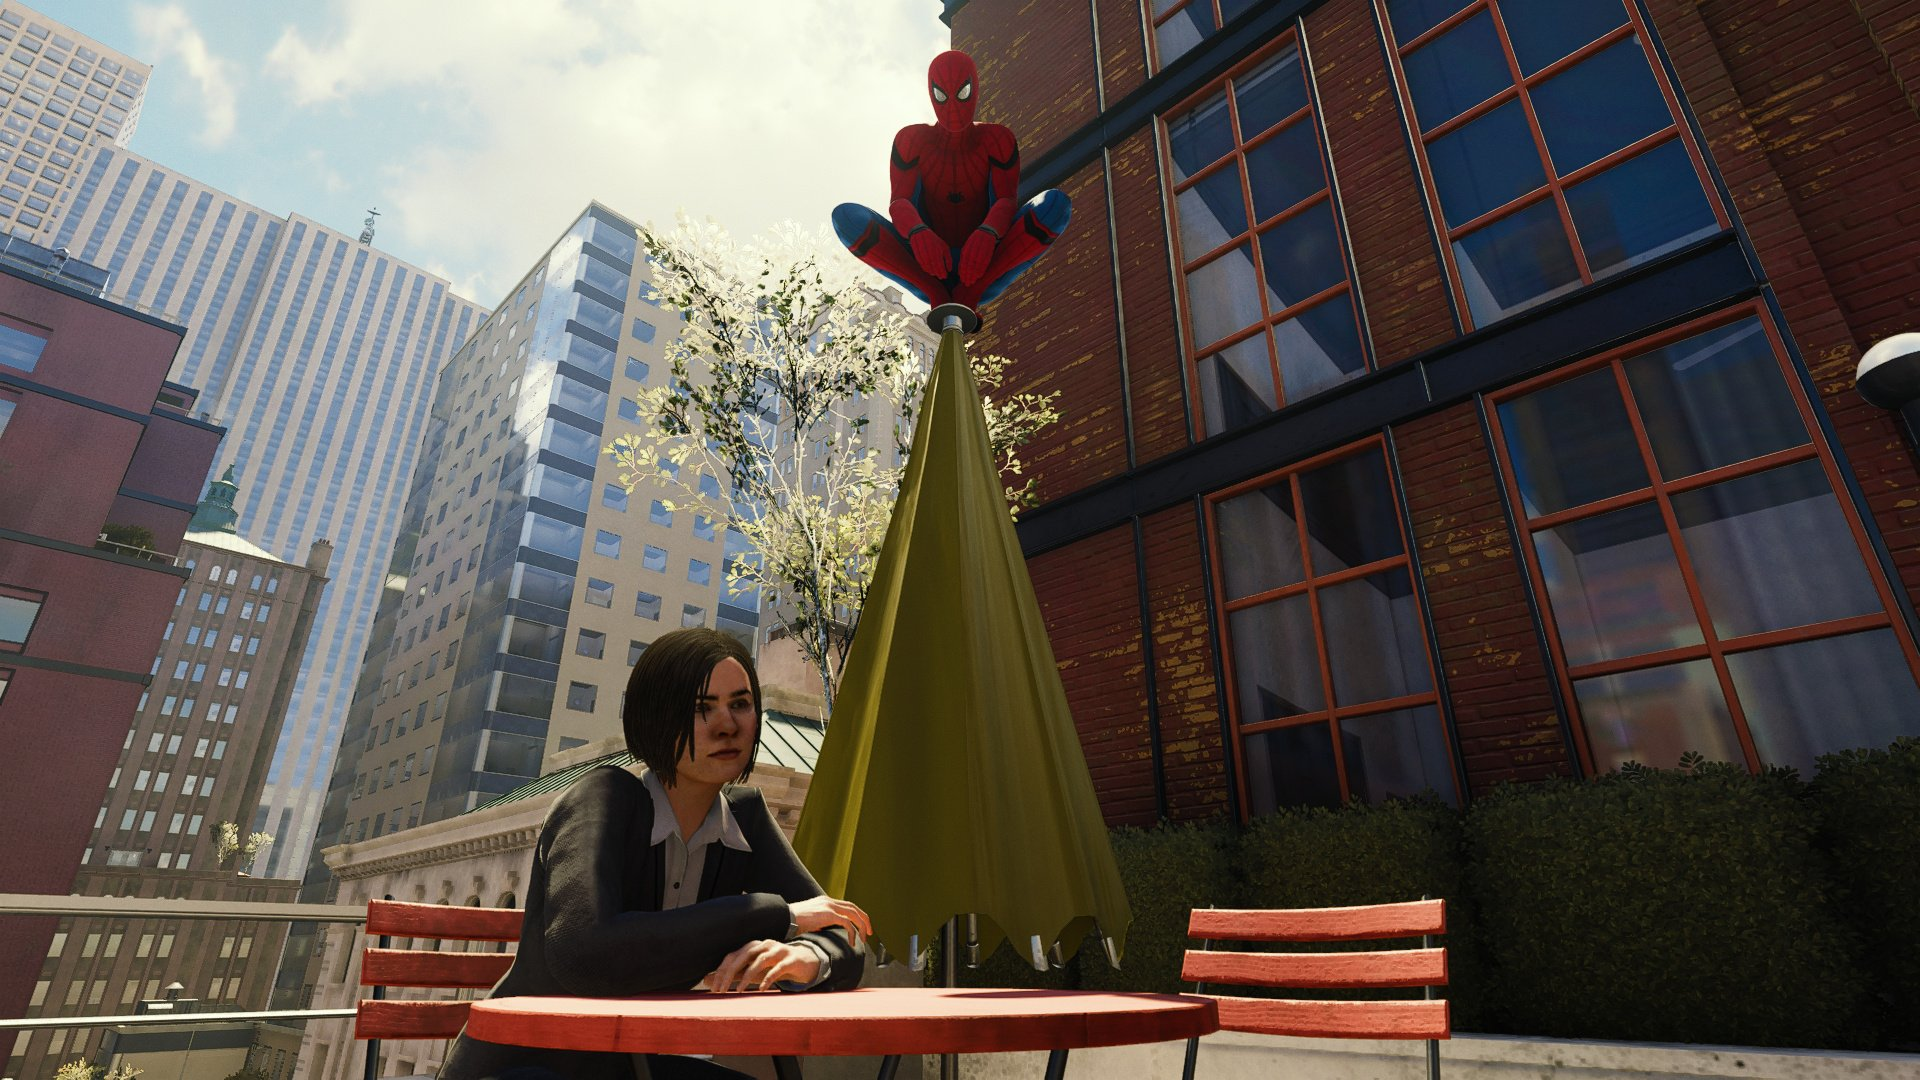 Soapbox Marvel S Spider Man Has The Most Fun Photo Mode